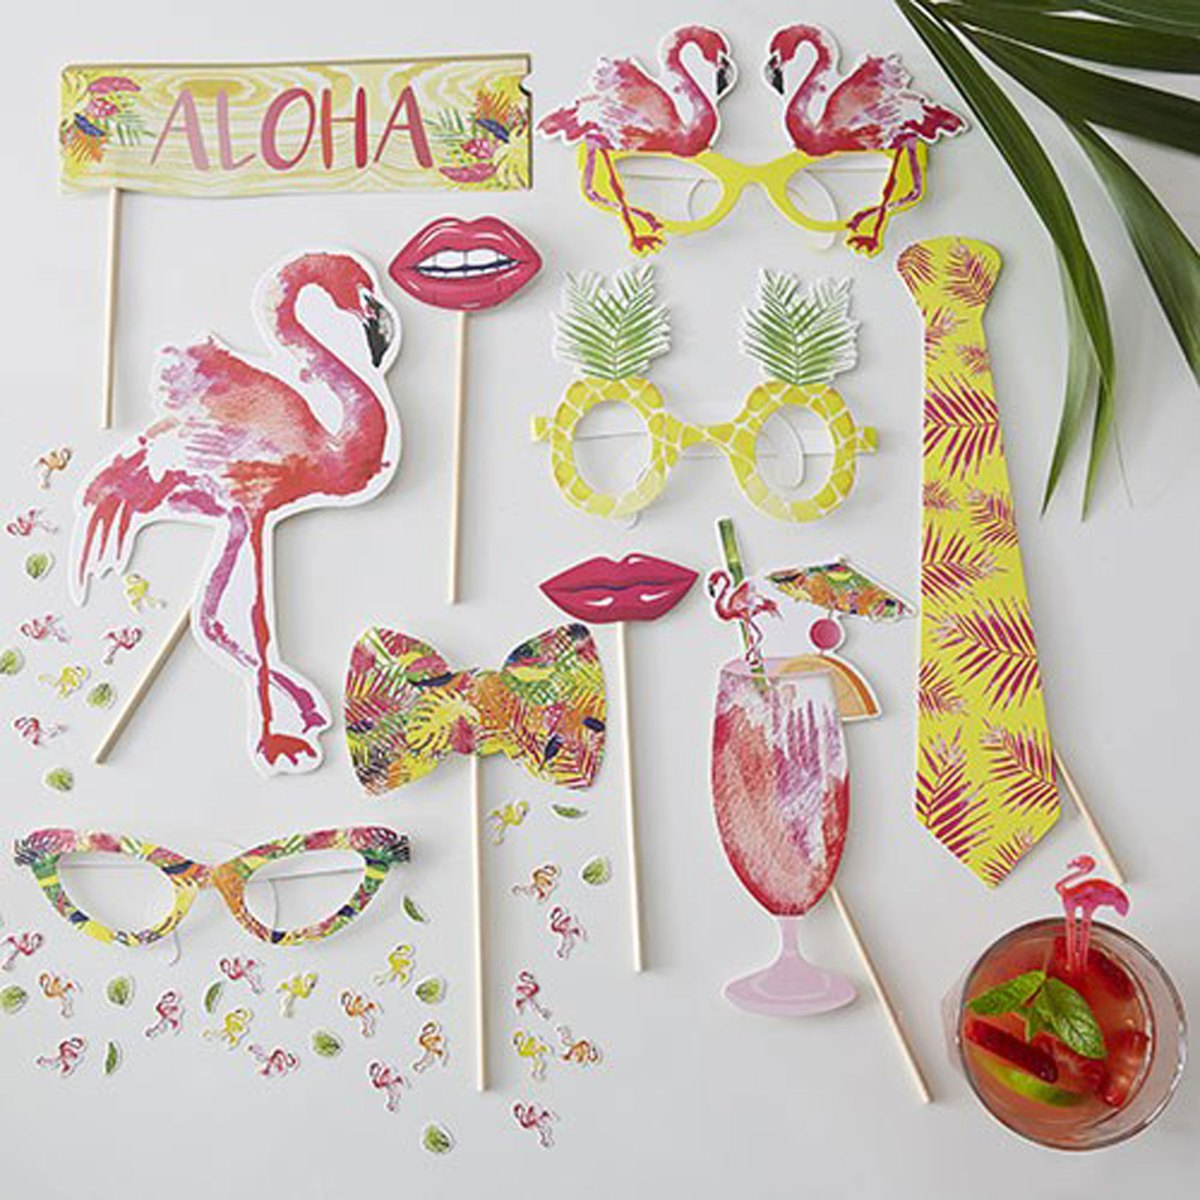 Flamingo Fun Party Phot Booth Props Kit with pianapple glasses flamingo sunglasses exotic drink